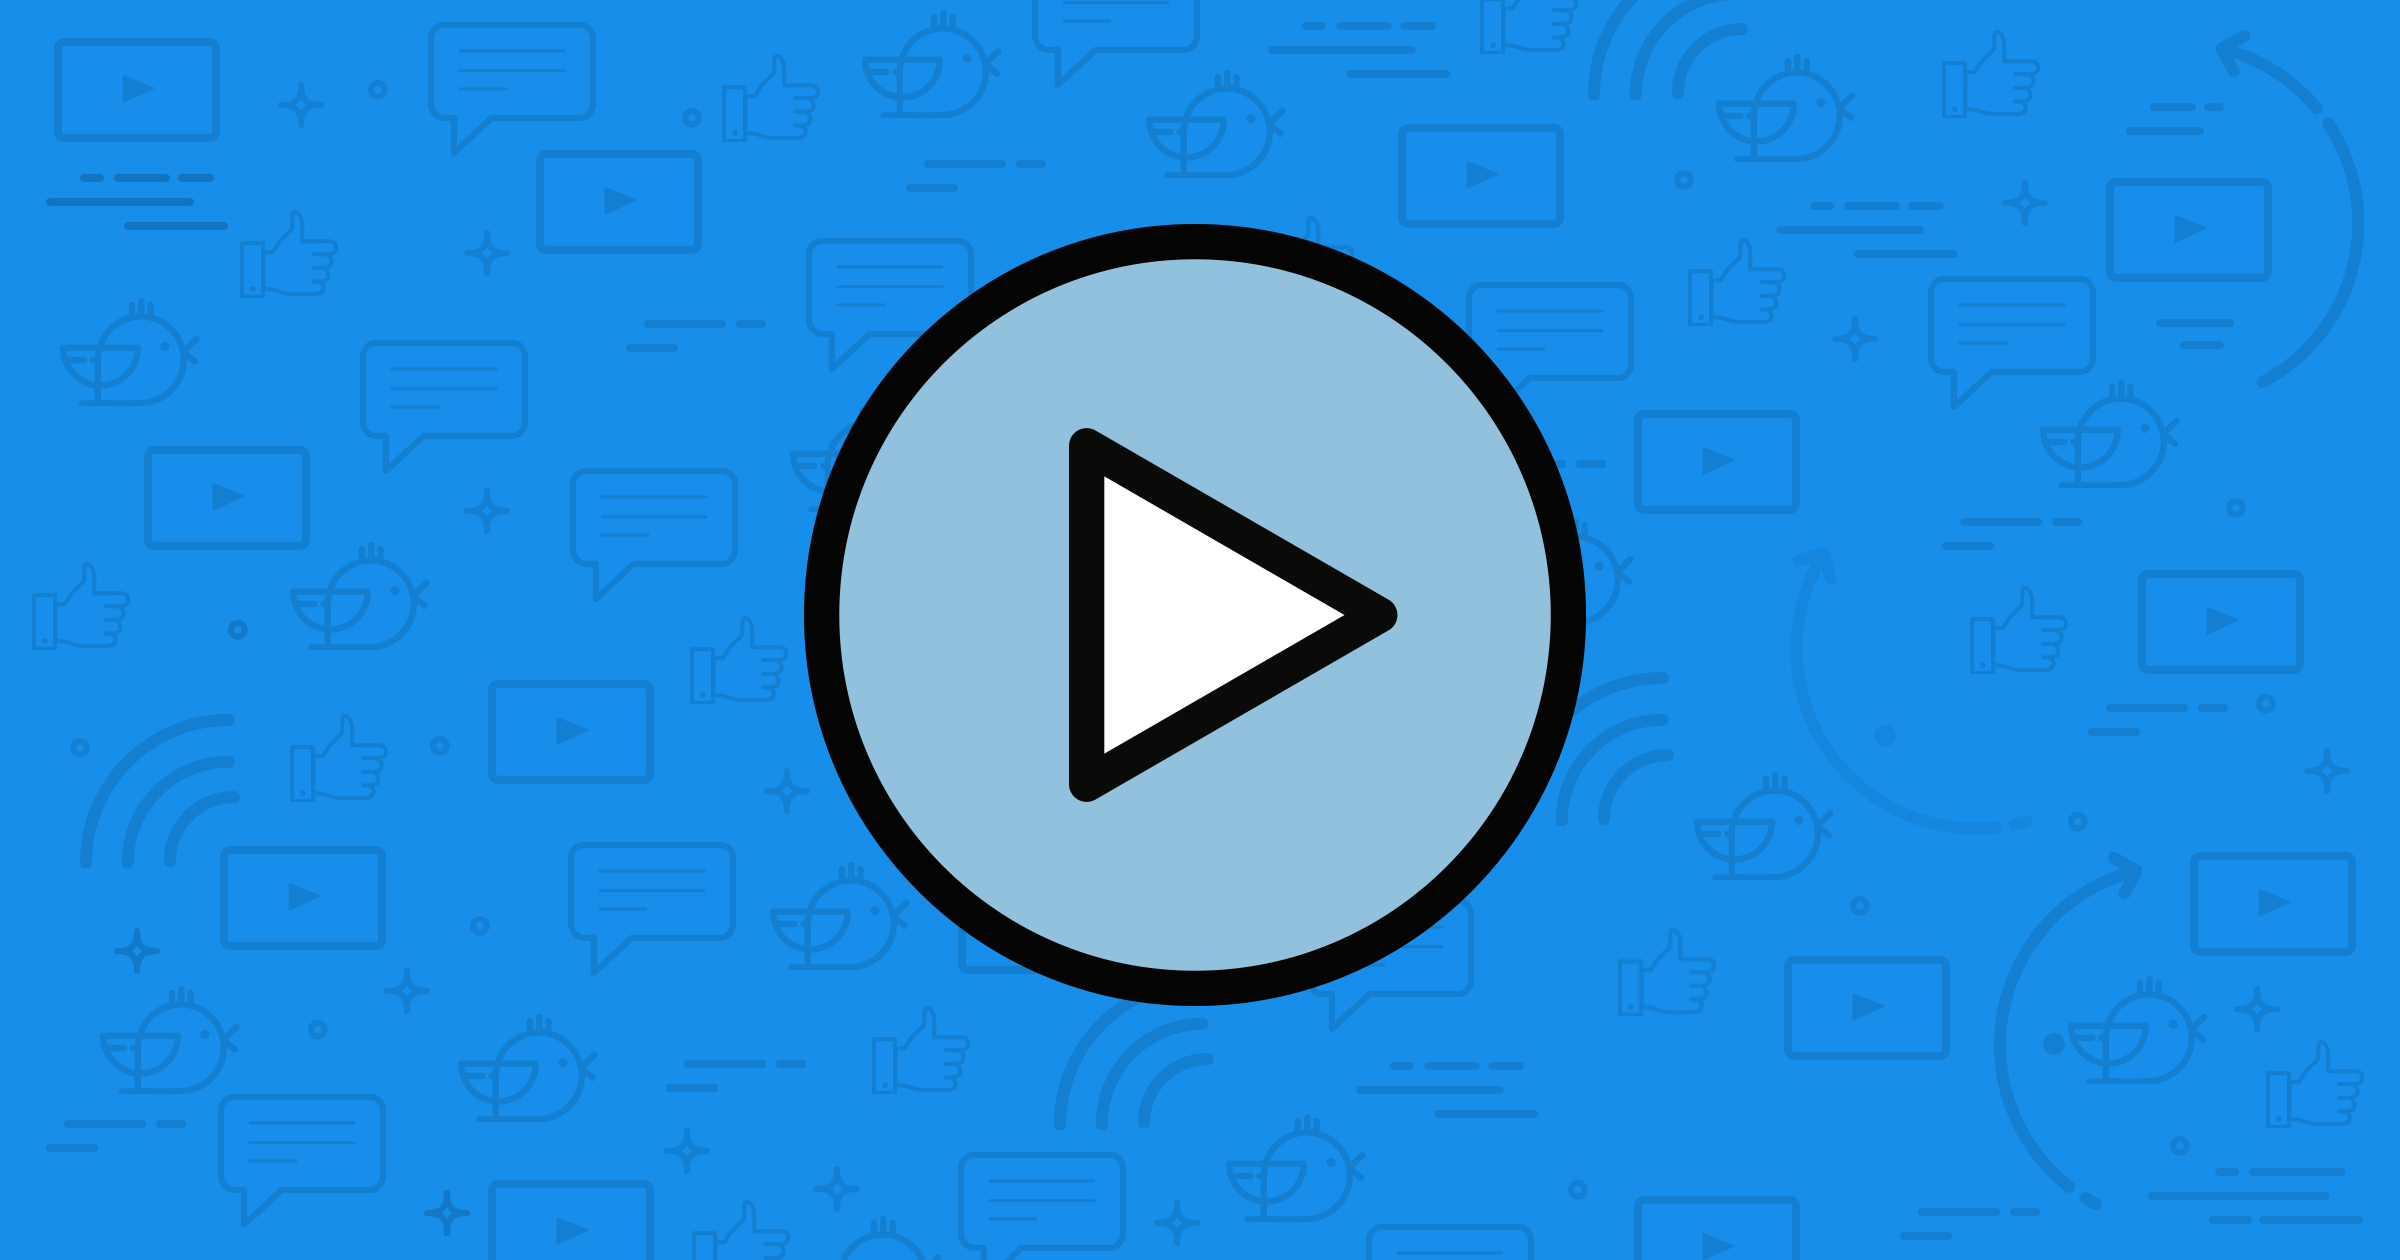 50 Video Marketing Stats to Help You Create a Winning Social Media Strategy in 2017